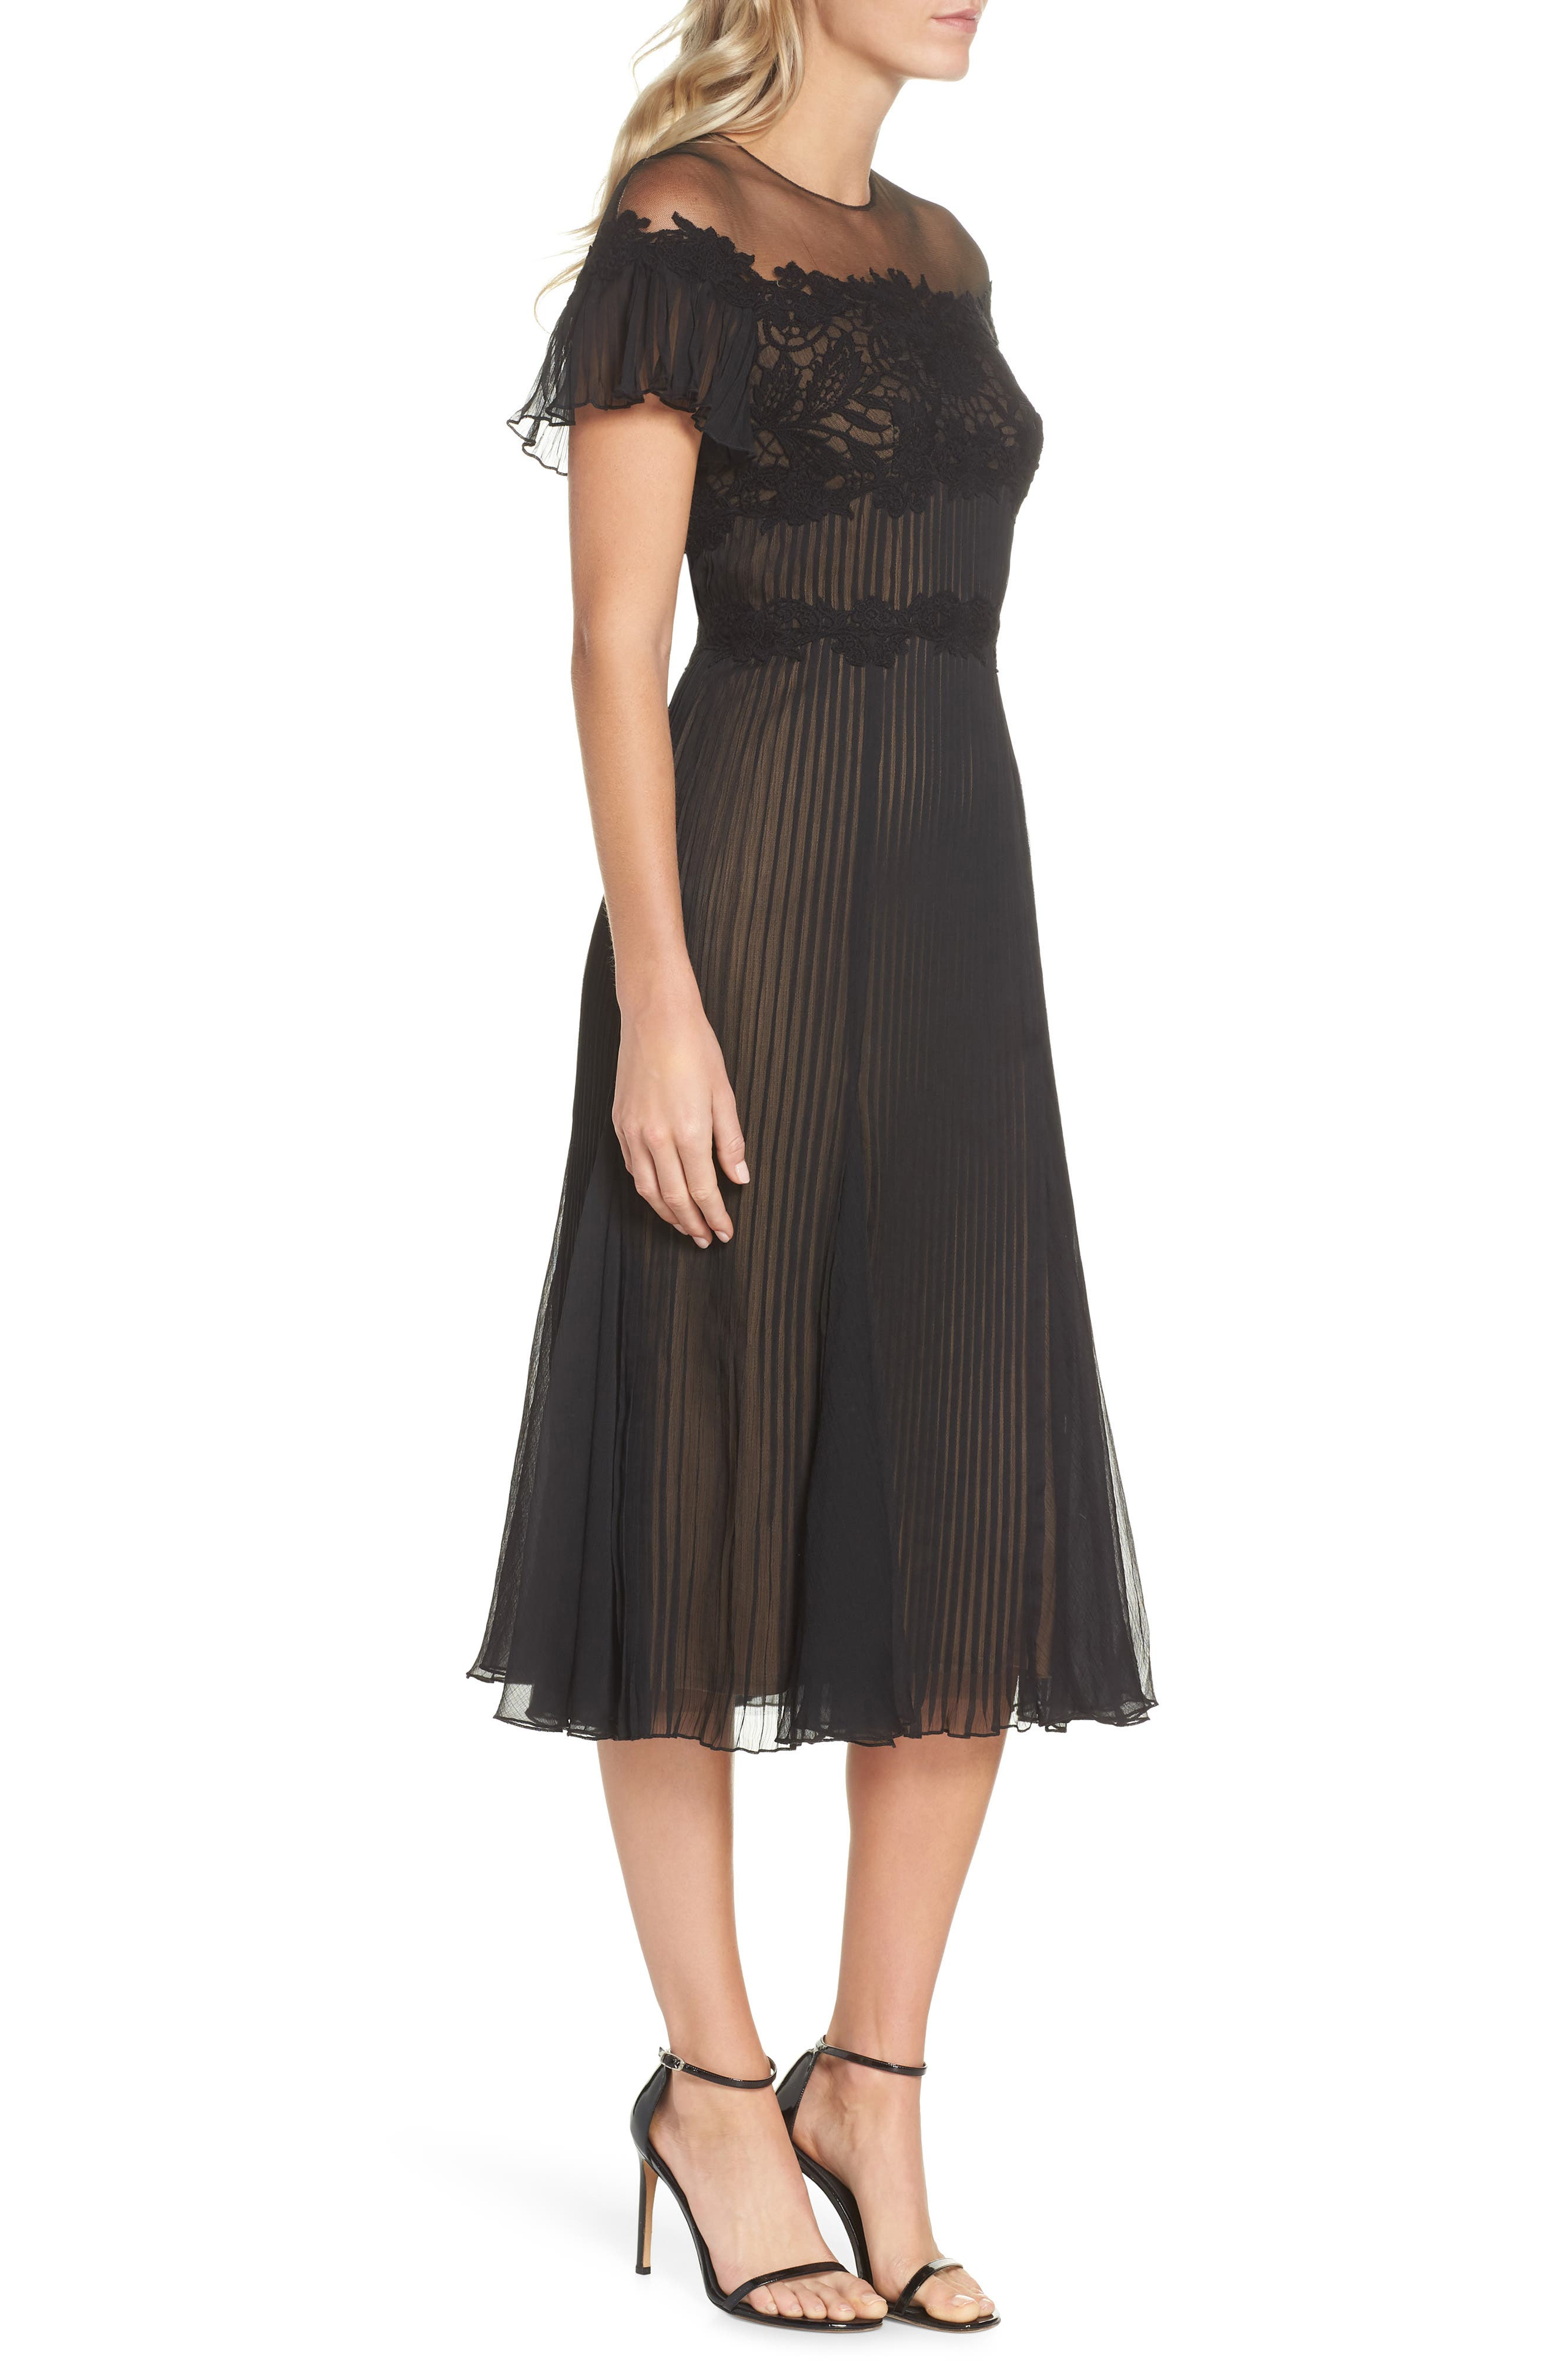 TADASHI SHOJI,                             Lace & Chiffon A-Line Dress,                             Alternate thumbnail 3, color,                             BLACK/ NUDE